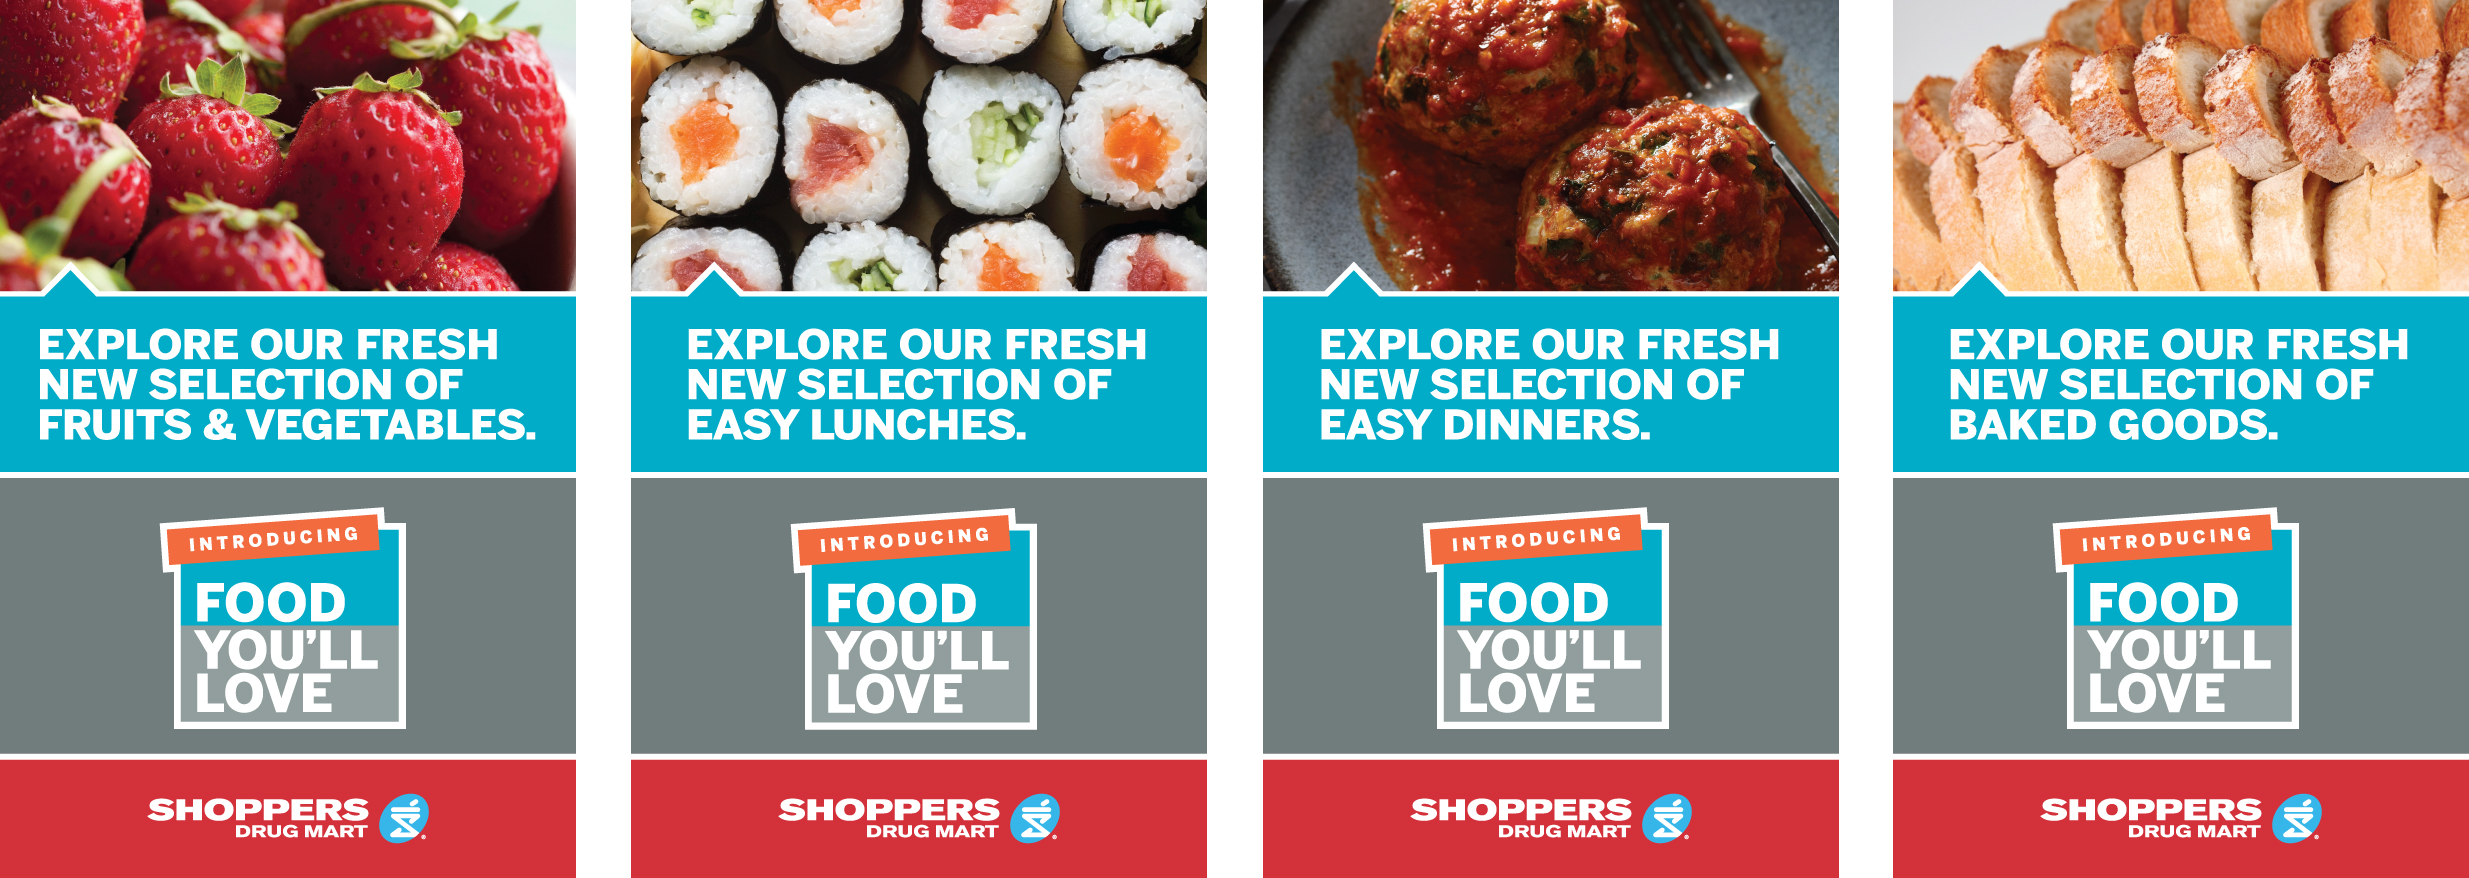 Shoppers Drug Mart Loblaws Food Launch  Window Posters 40 x 61